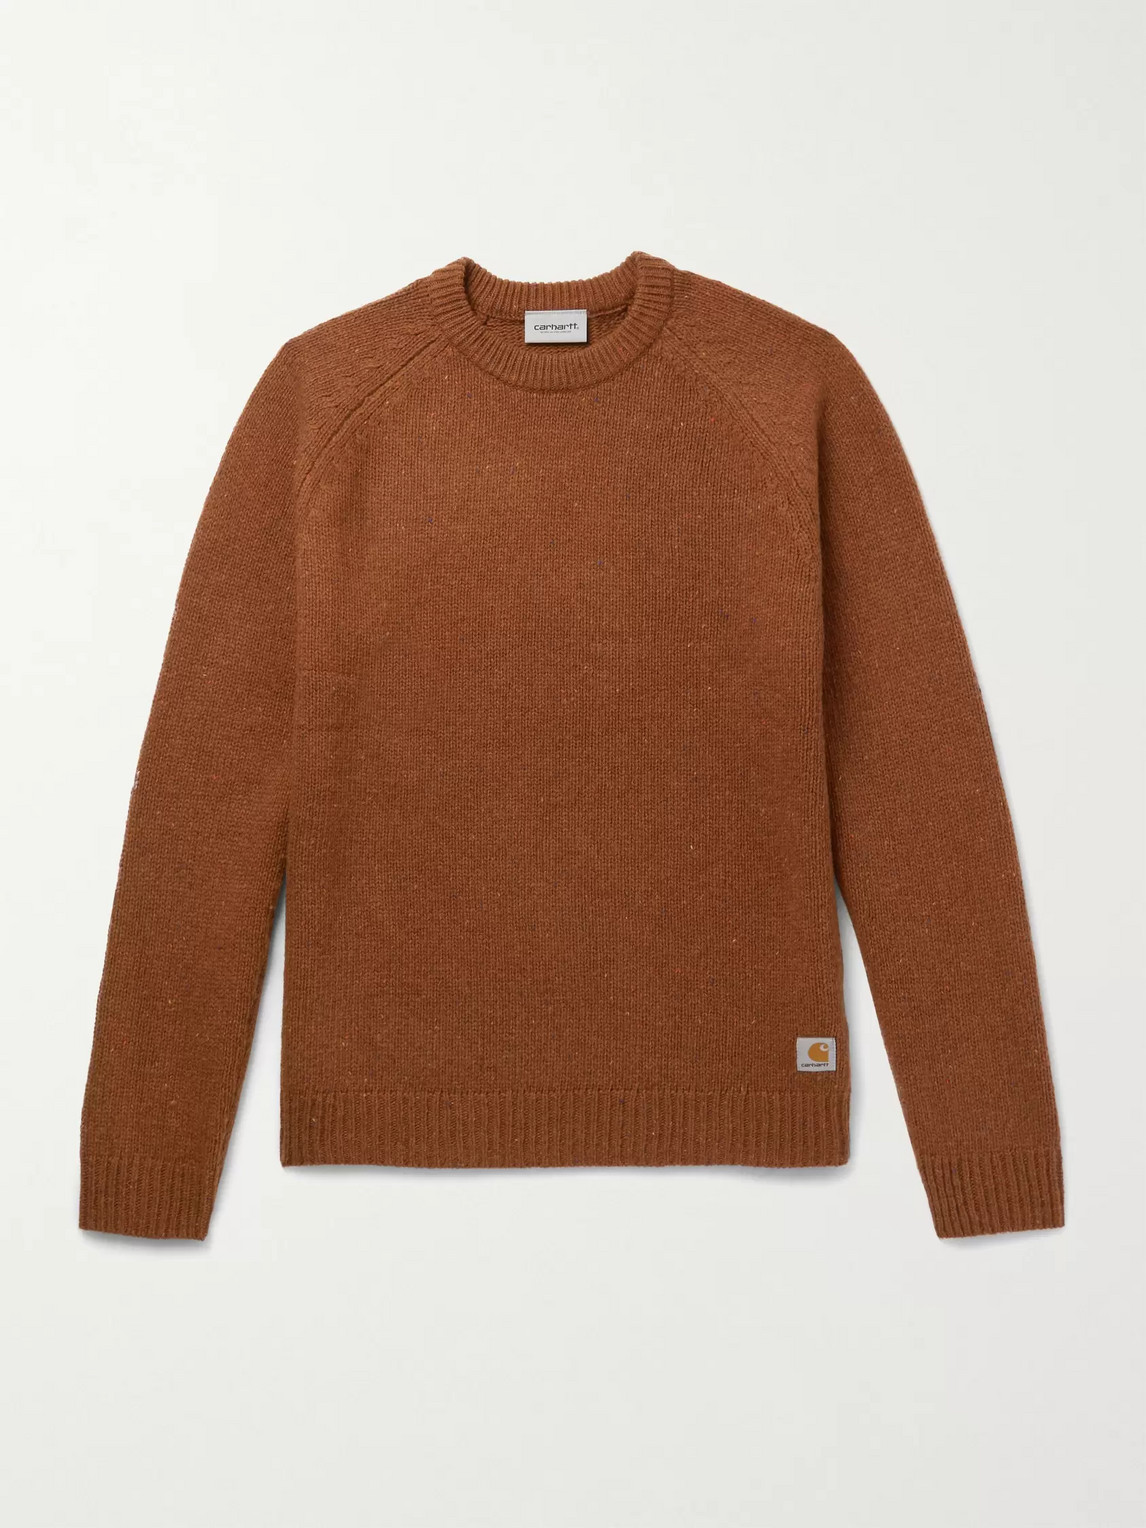 Carhartt Anglistic Mélange Wool-blend Sweater In Brown